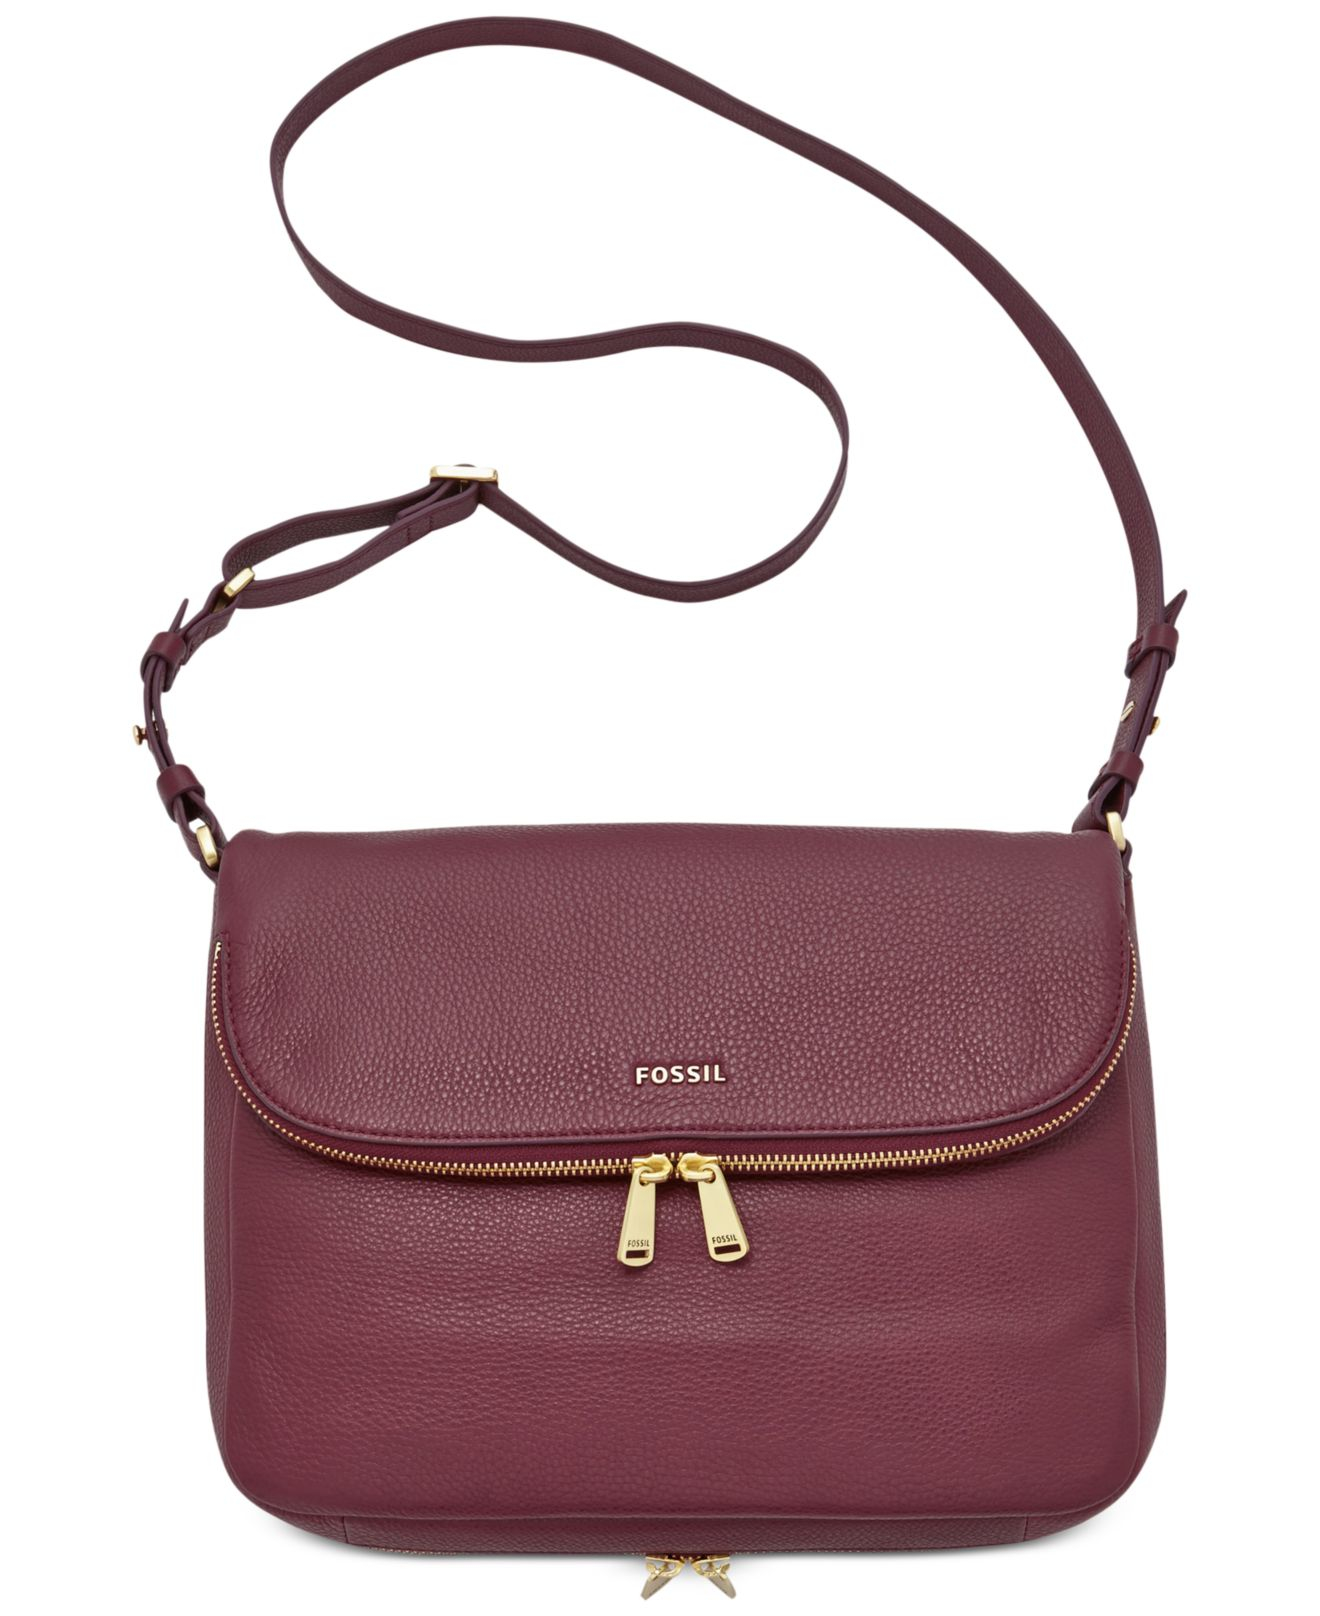 Fossil Preston Leather Flap Shoulder Bag in Purple | Lyst